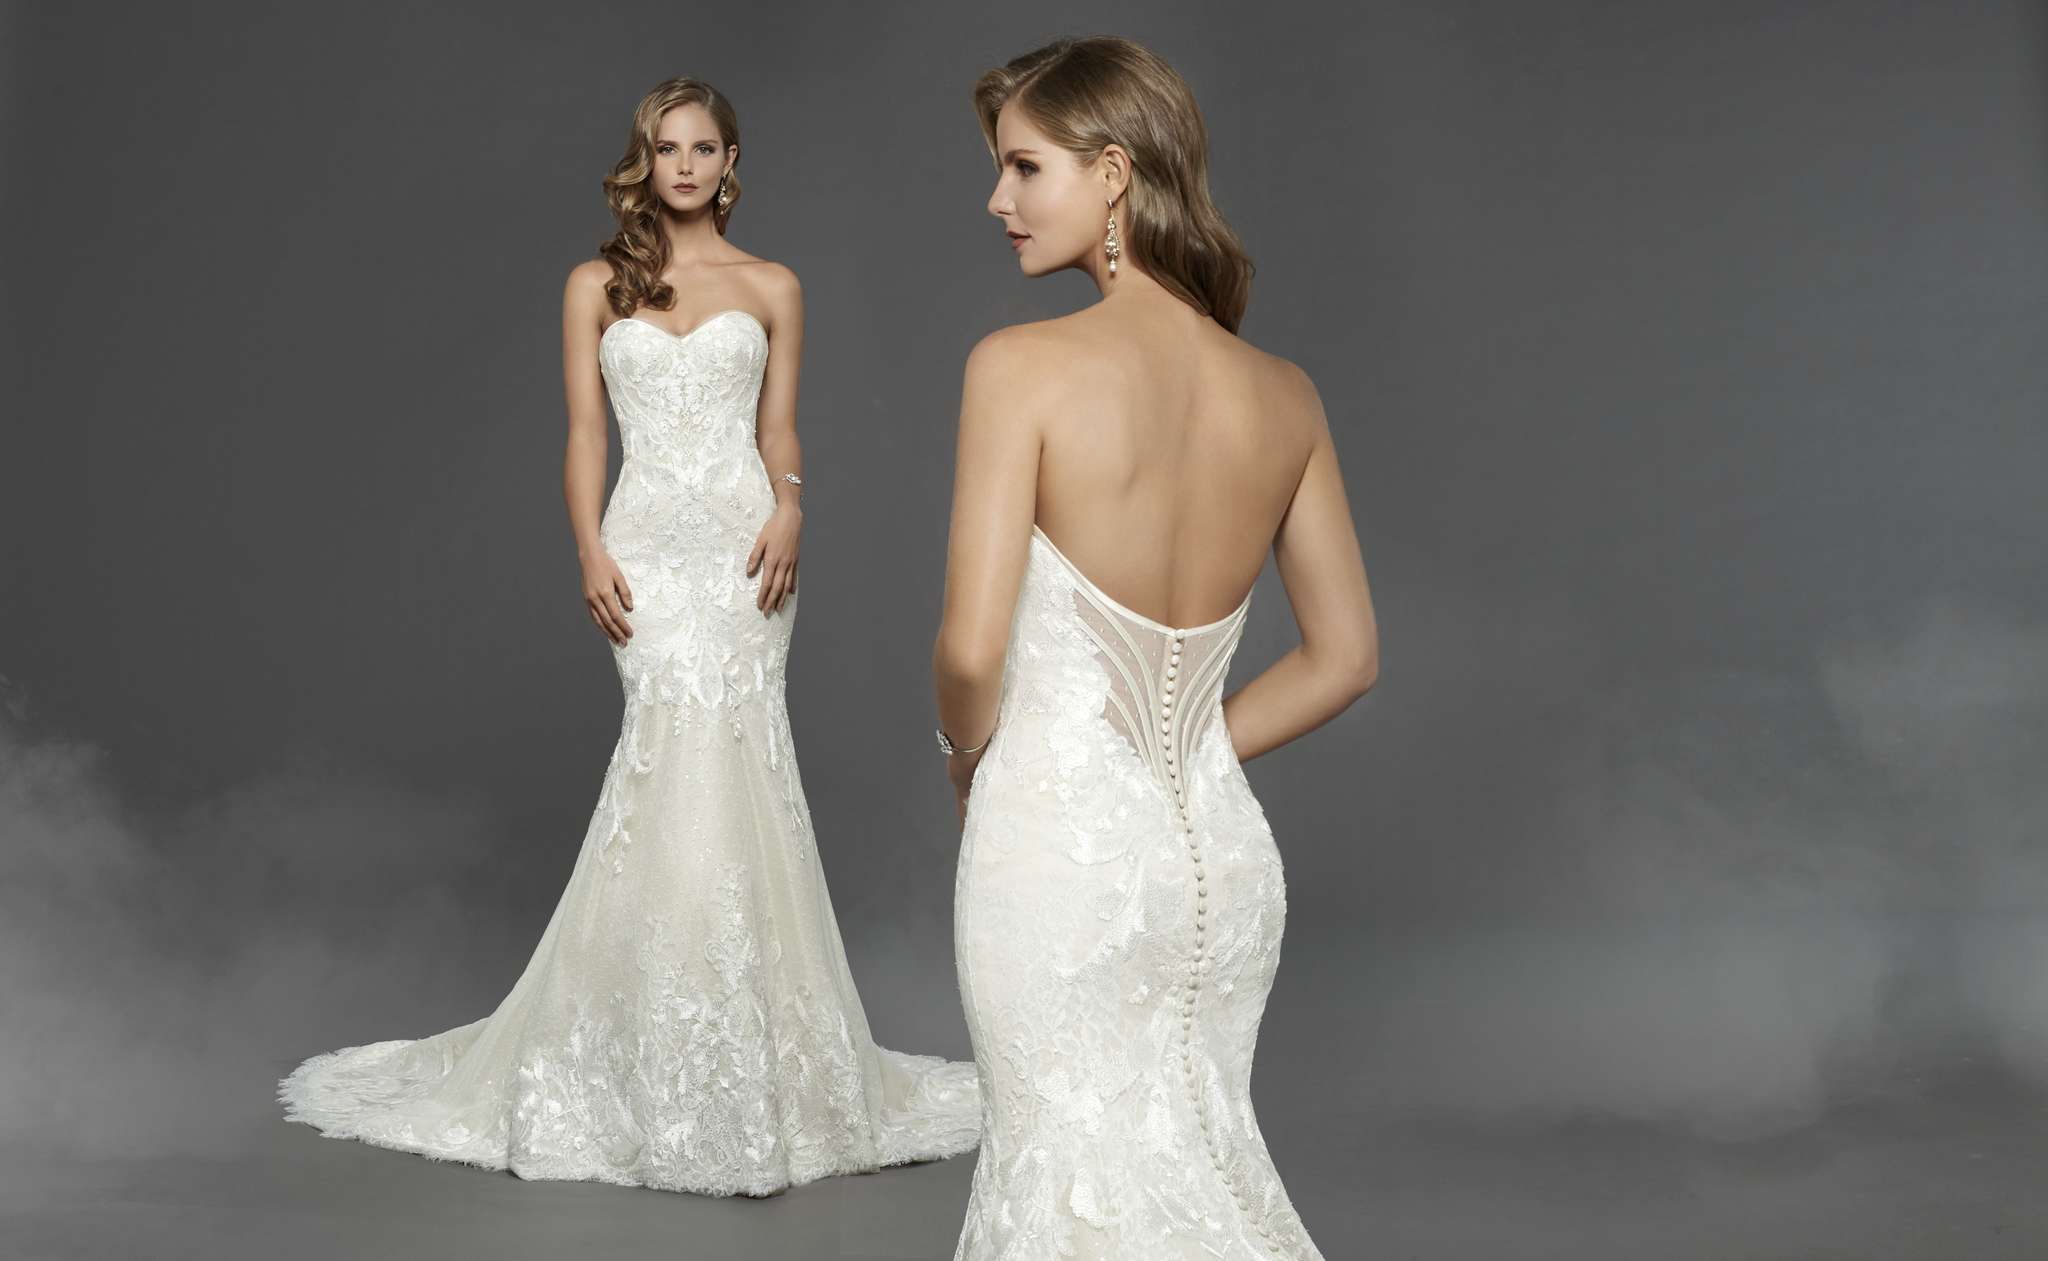 Bridal Salons in Boston, MA - The Knot